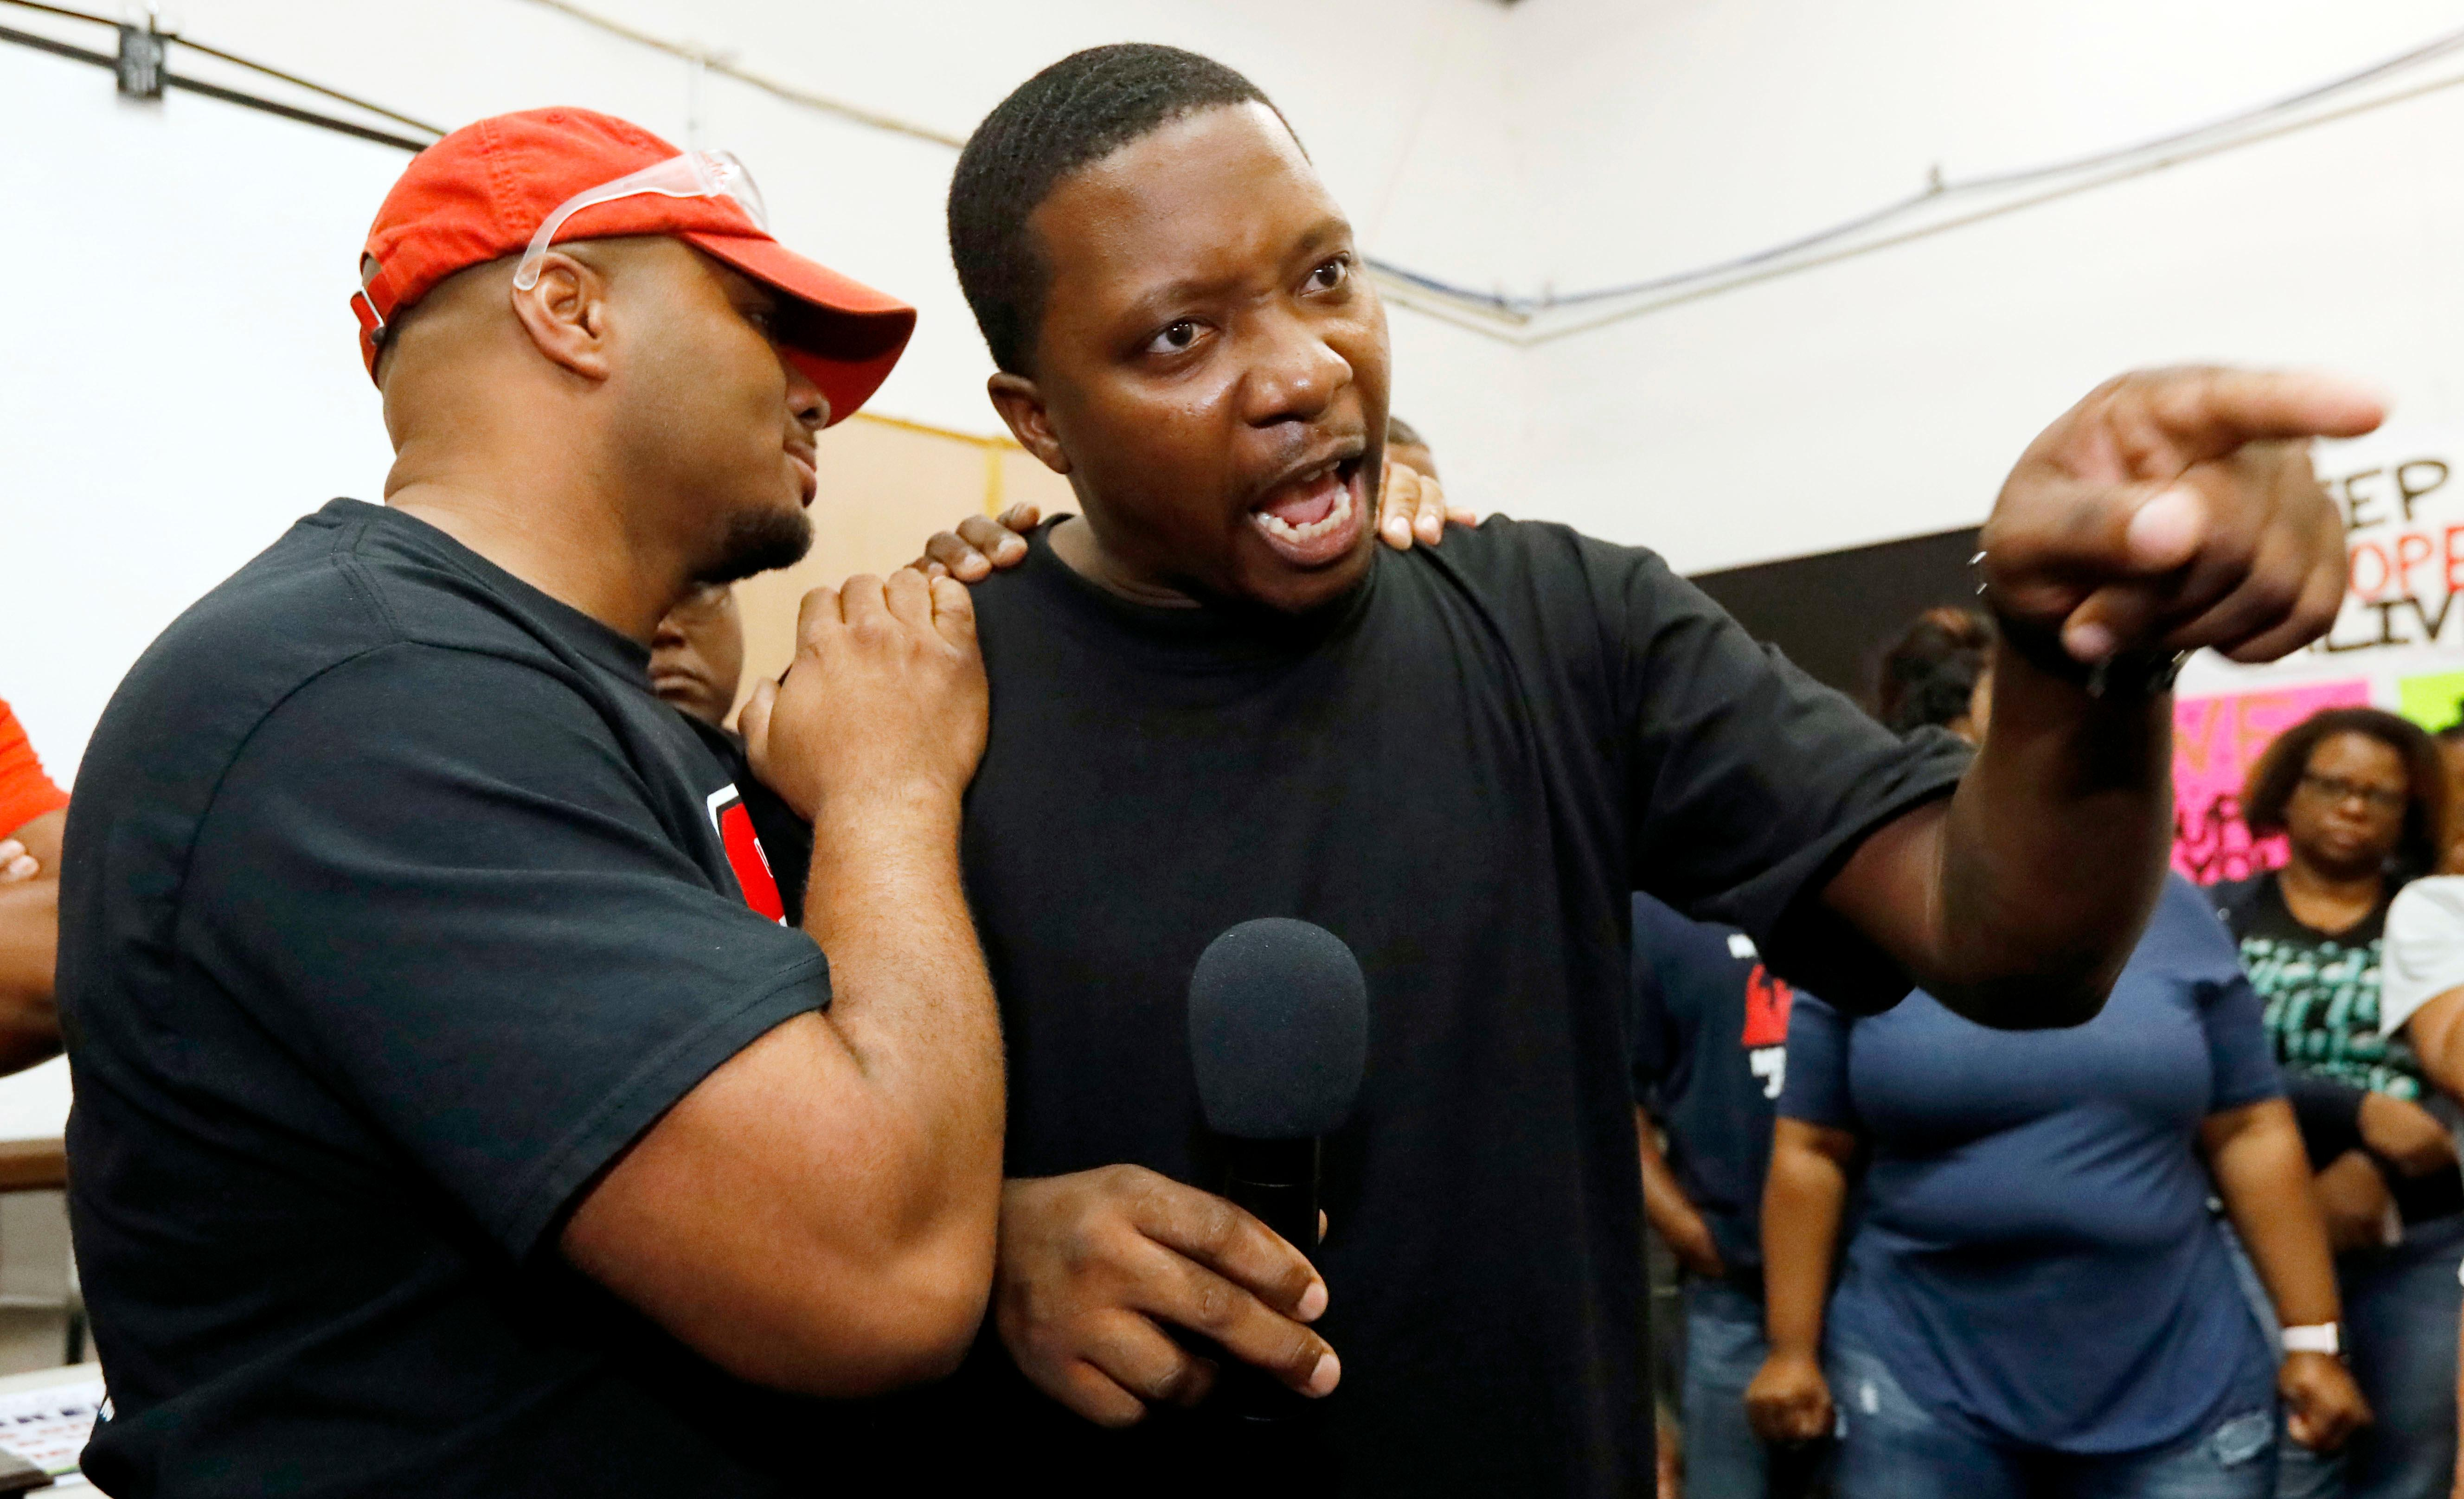 Nissan employee Morris Mock, left, consoles colleague Antonio Hoover as he expresses his disappointment at losing their bid to form a union at the Nissan vehicle assembly plant in Canton, Miss., Friday, Aug. 4, 2017.  (AP Photo/Rogelio V. Solis)